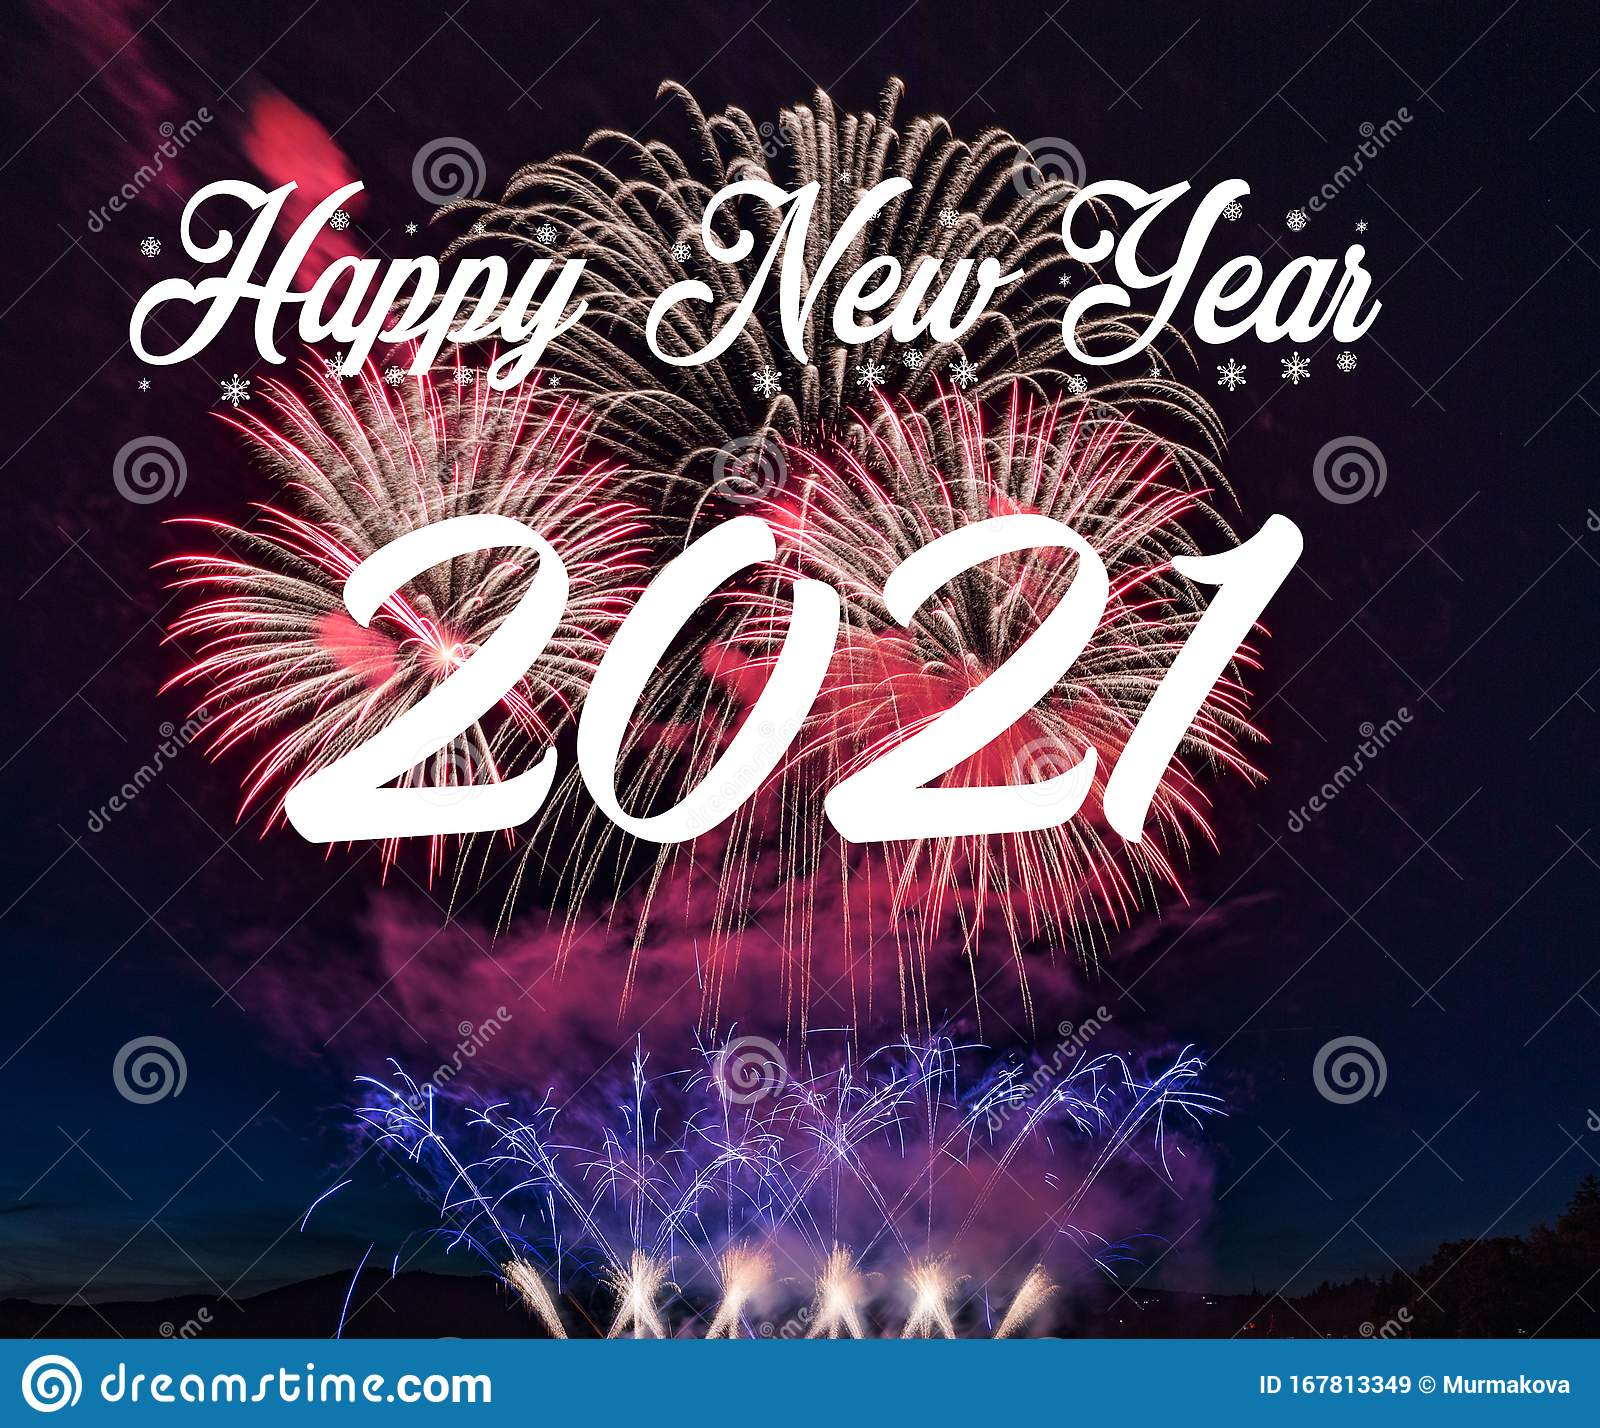 23 999 Happy New Year 2021 Photos Free Royalty Free Stock Photos From Dreamstime